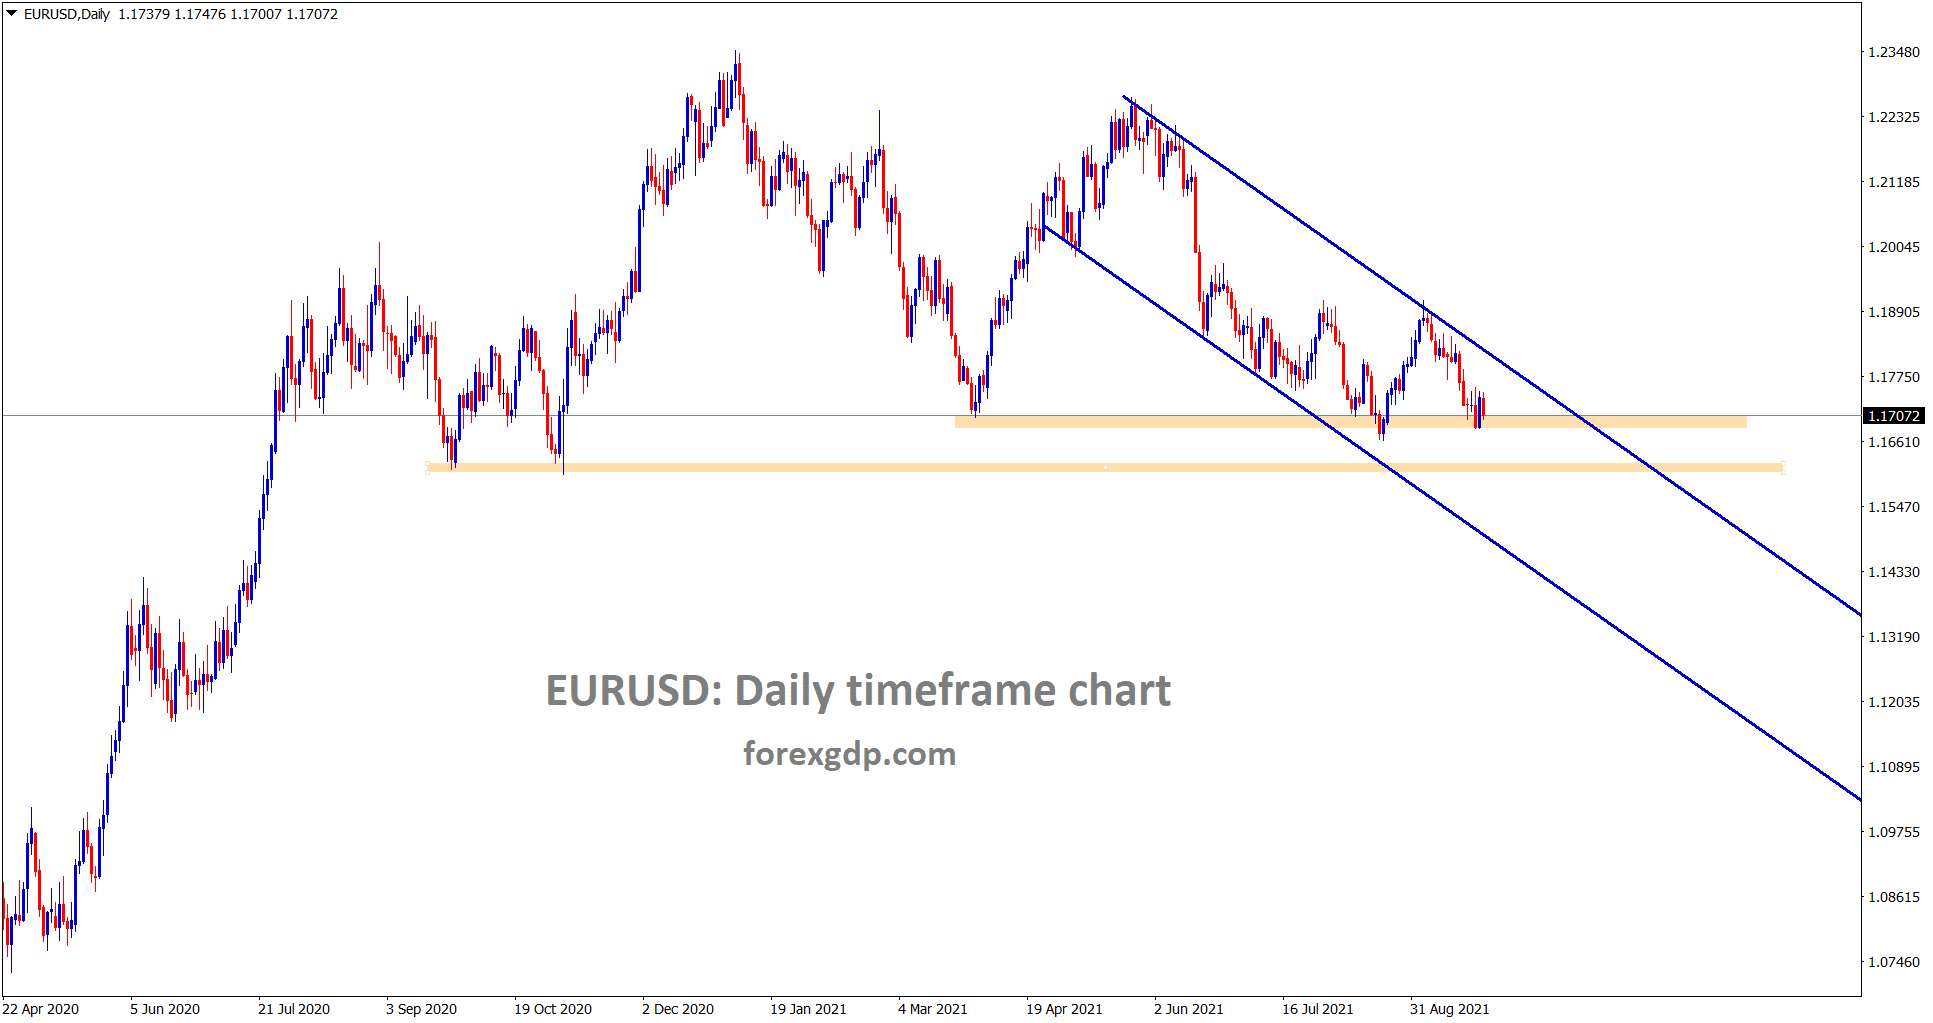 EURUSD is consolidating at the support area